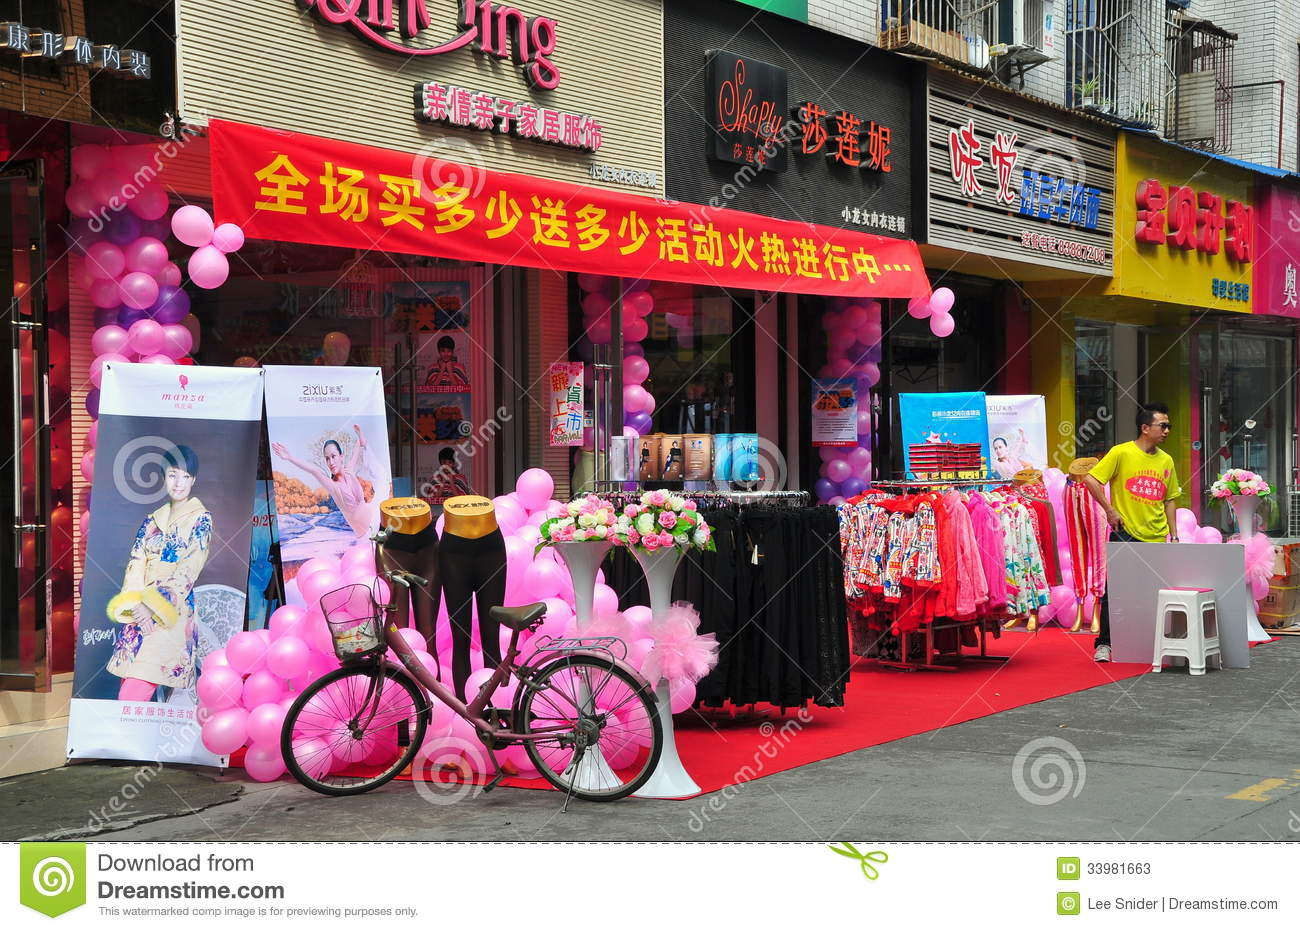 Work Clothing Stores in Canton Guangdong China YT